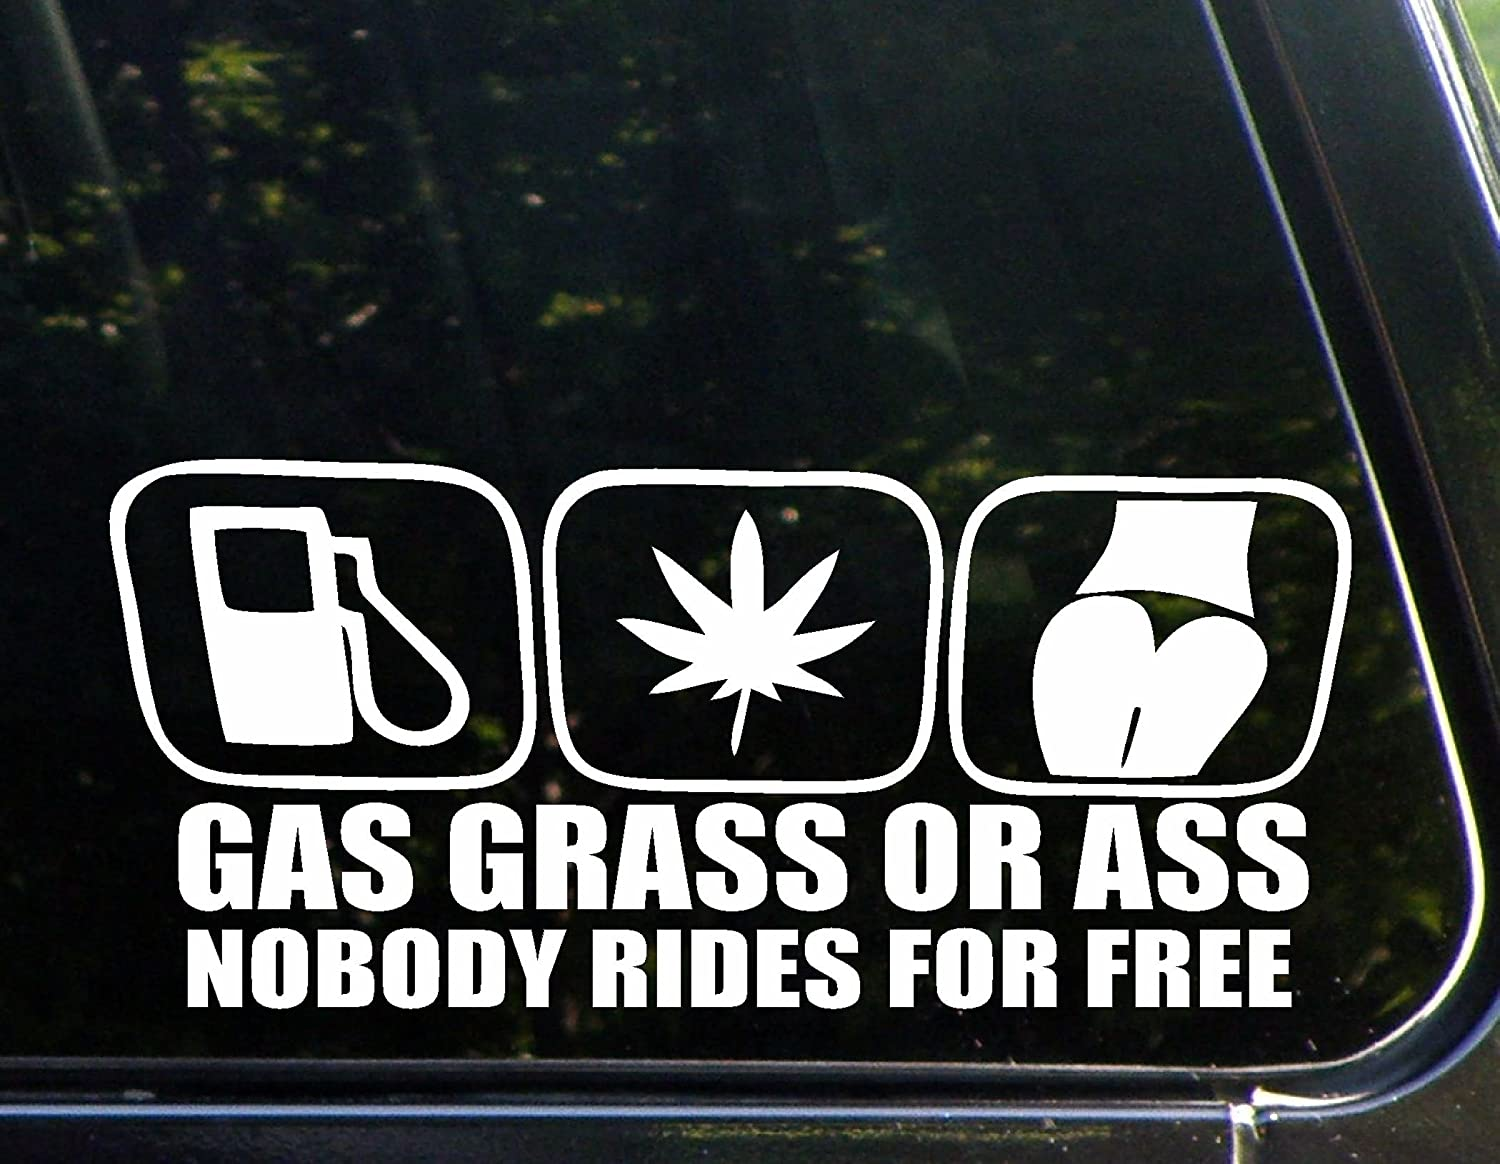 Amazon com diamond graphics gas grass or ass nobody rides for free 8 1 2 x 4 die cut decal bumper sticker for windows cars trucks laptops